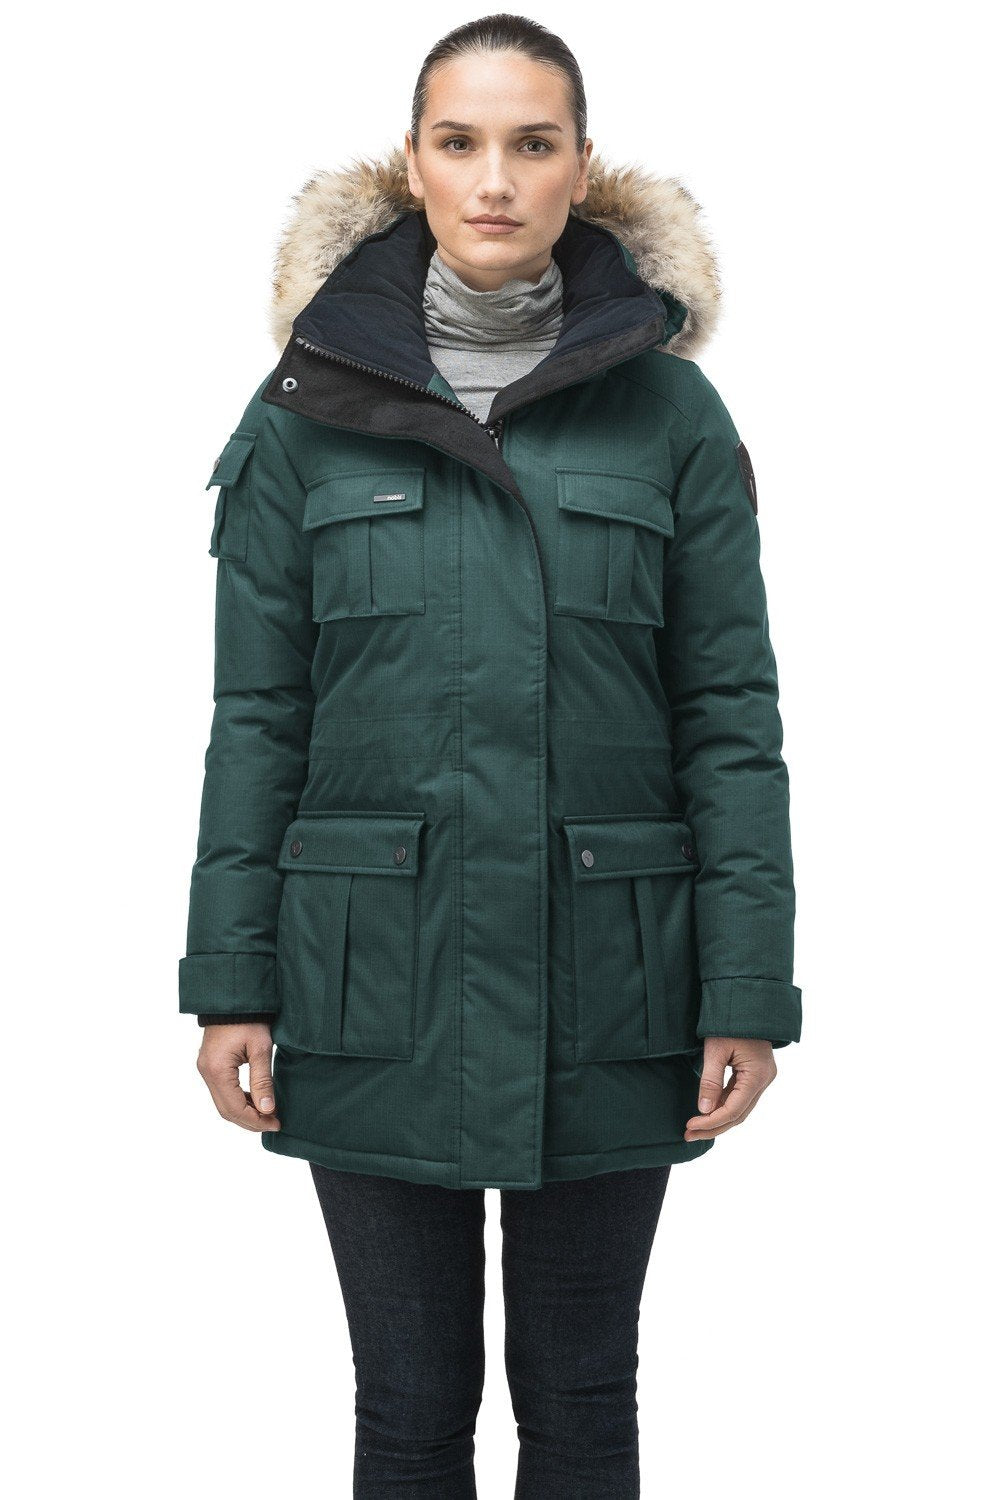 Nobis Cindy Ladies Parka in Forest